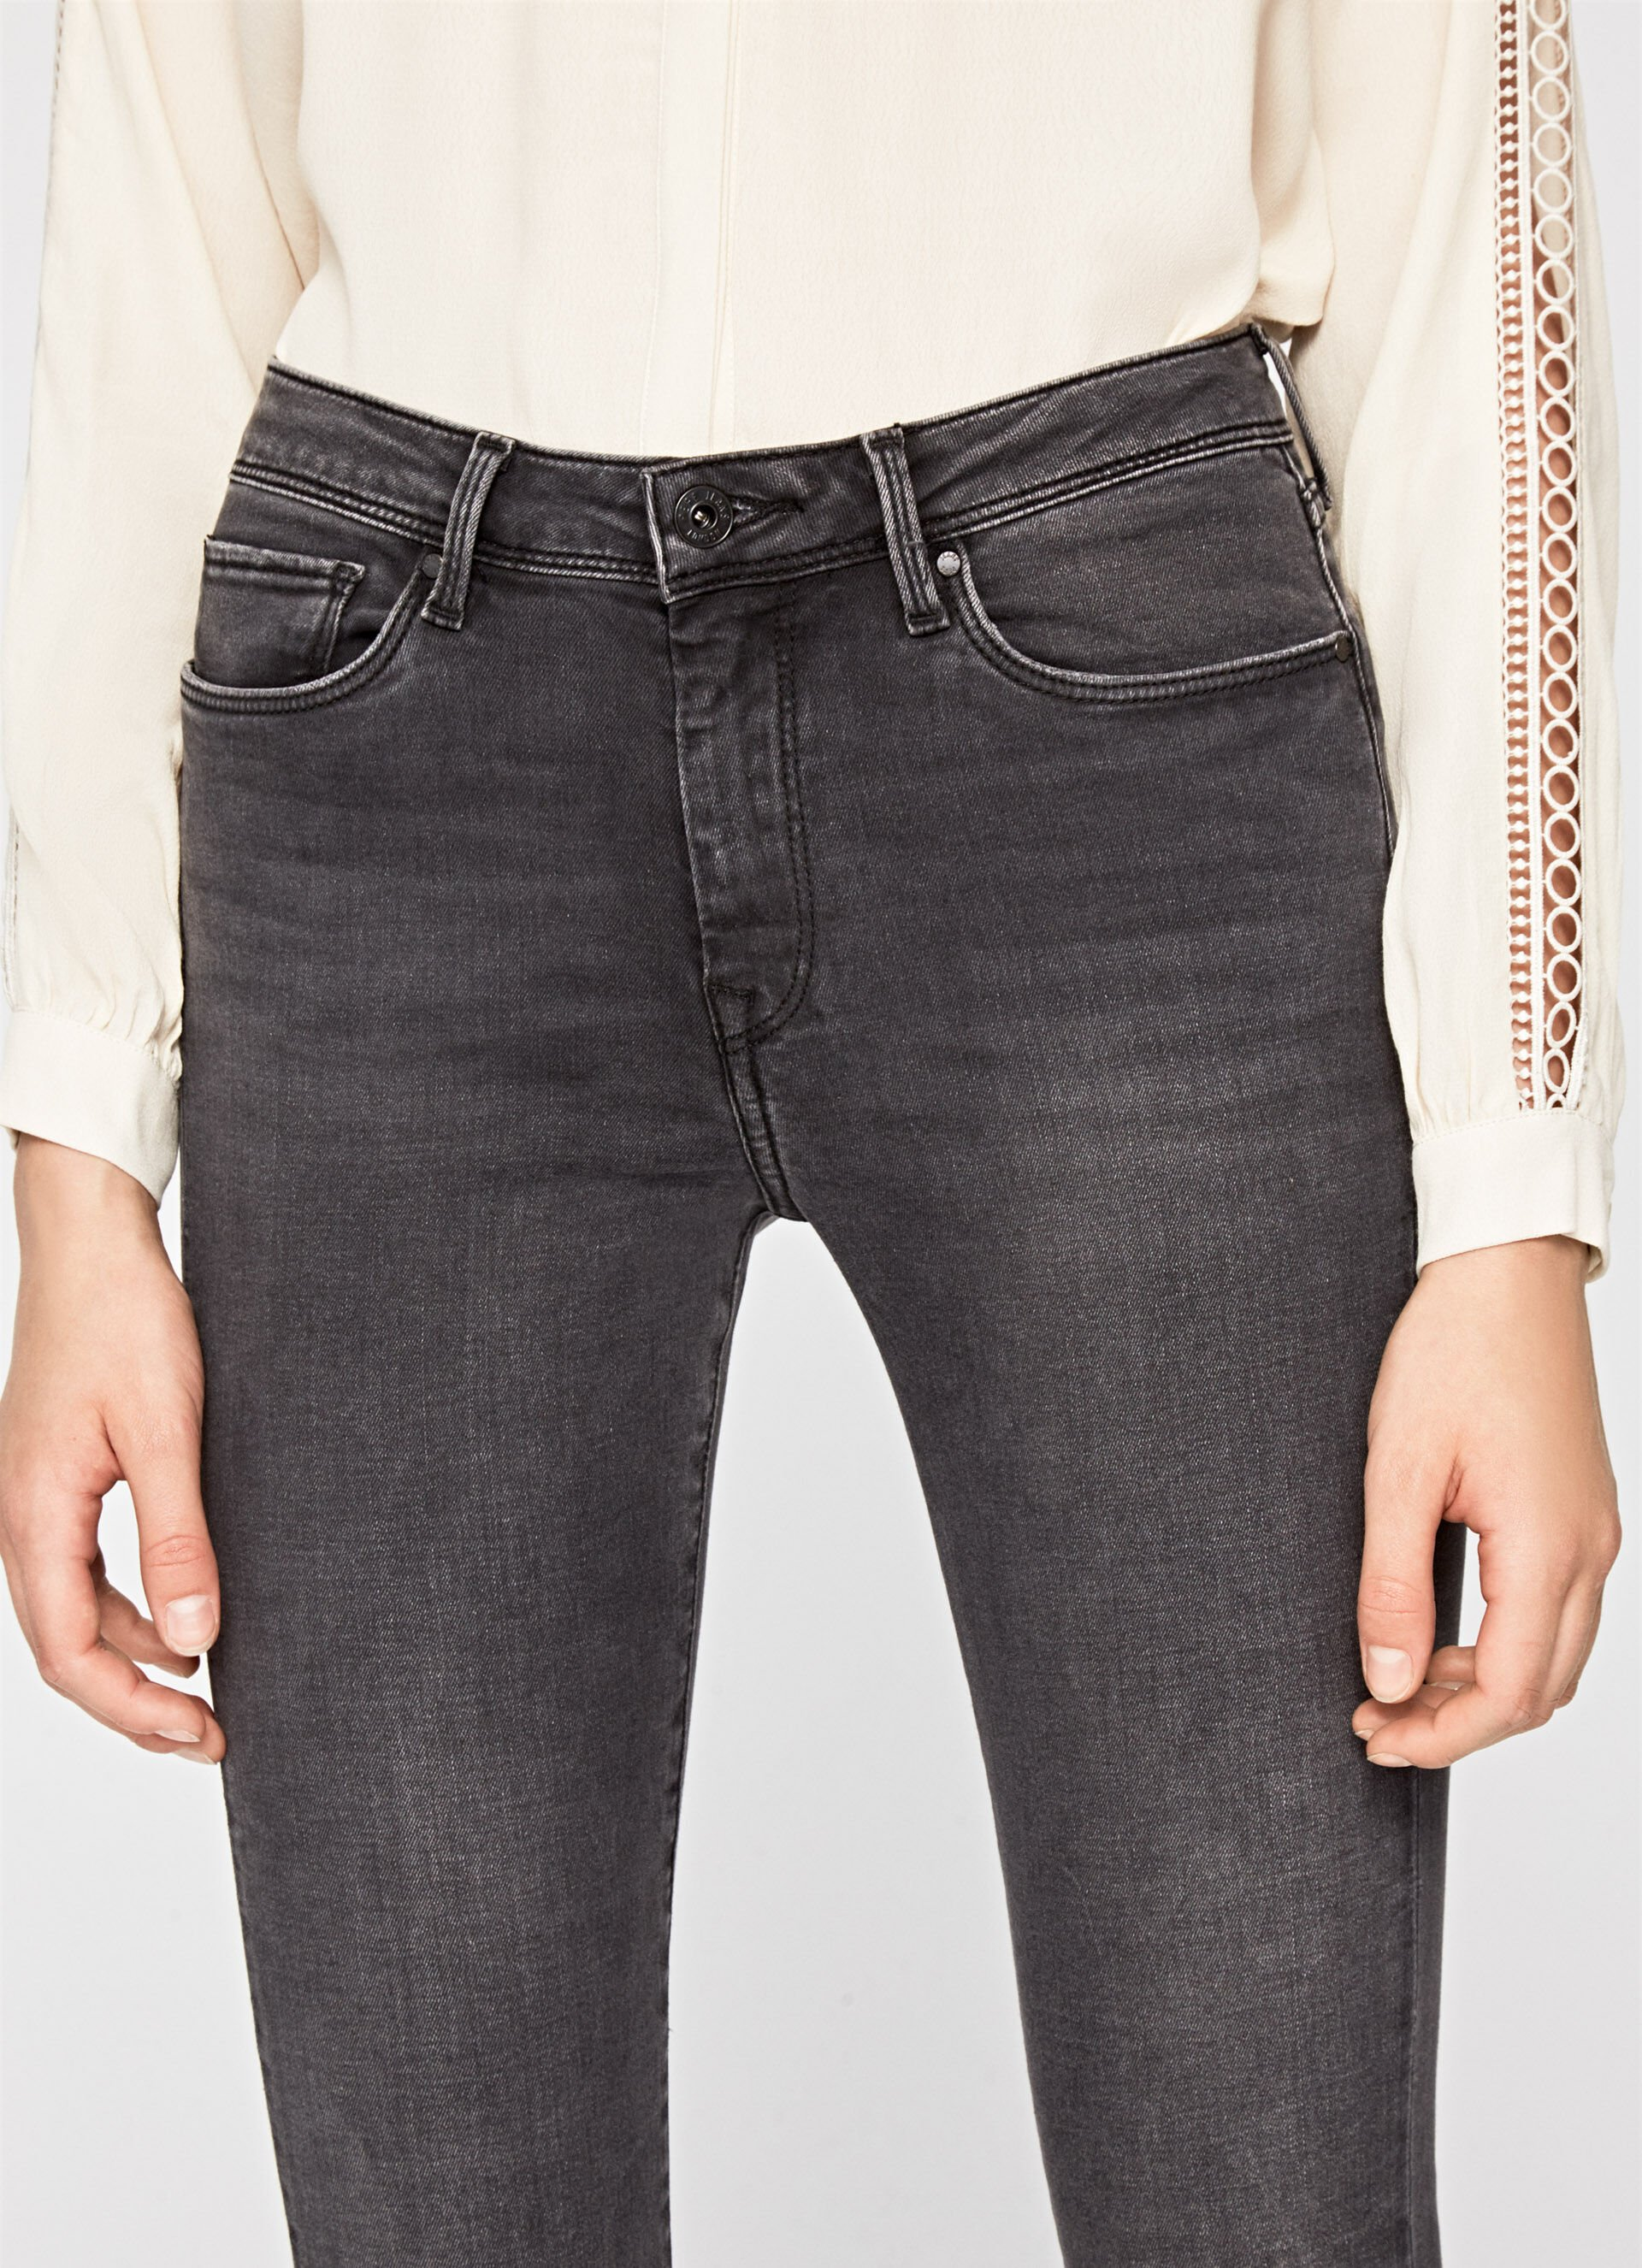 CHER SKINNY FIT HIGH WAIST JEANS